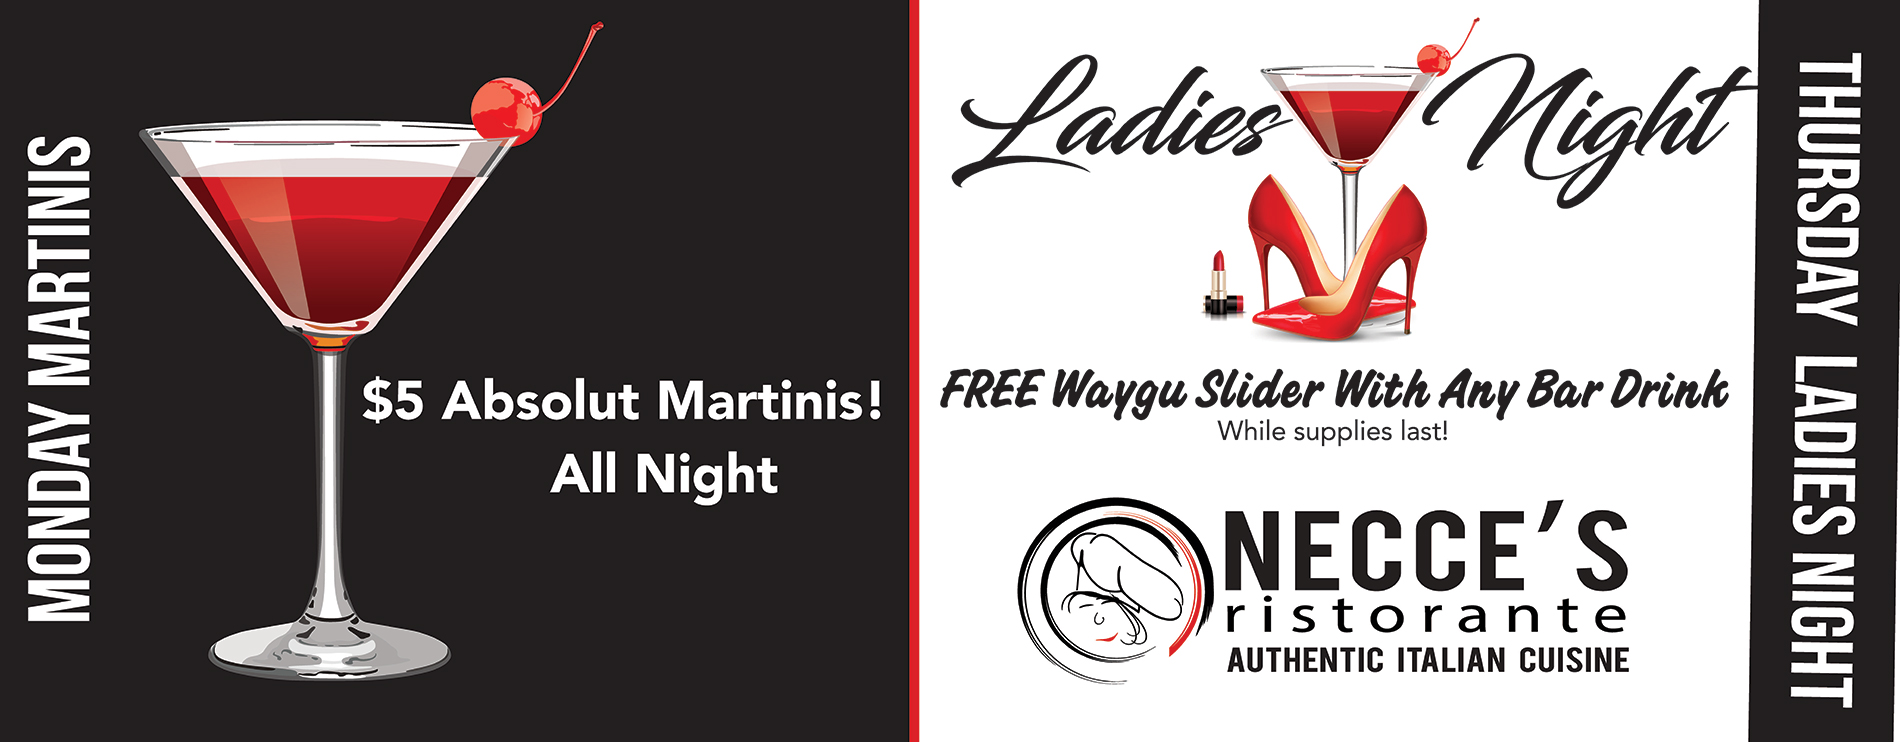 Ladies Night at Necce's Ristorante